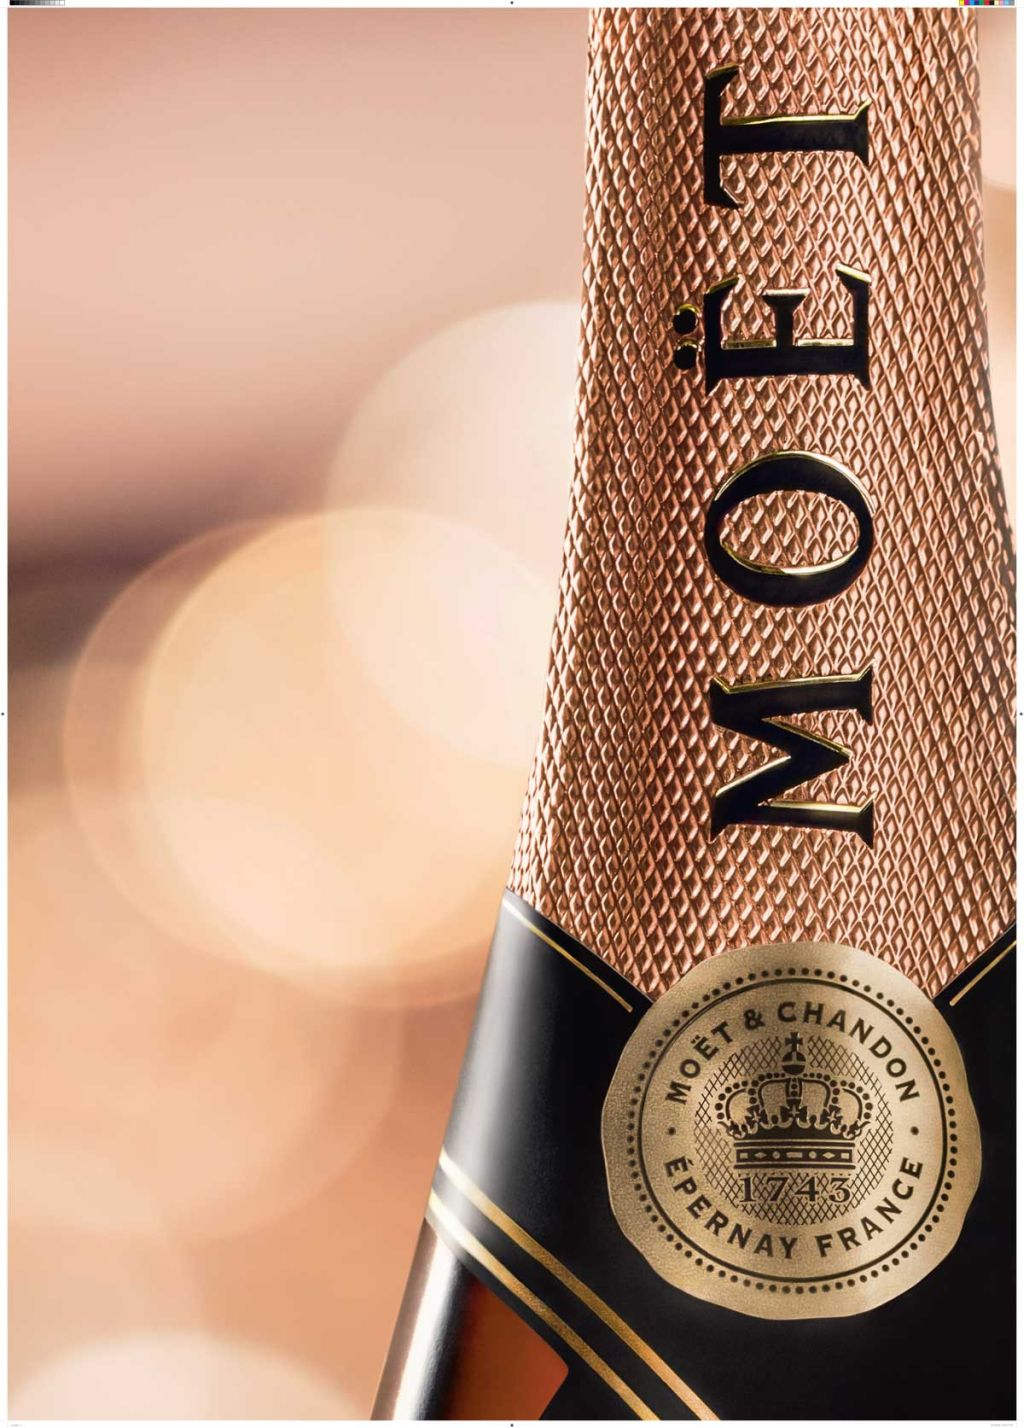 Moet & Chandon launches Nectar Imperial Rose & Light-Up Bottle (3)